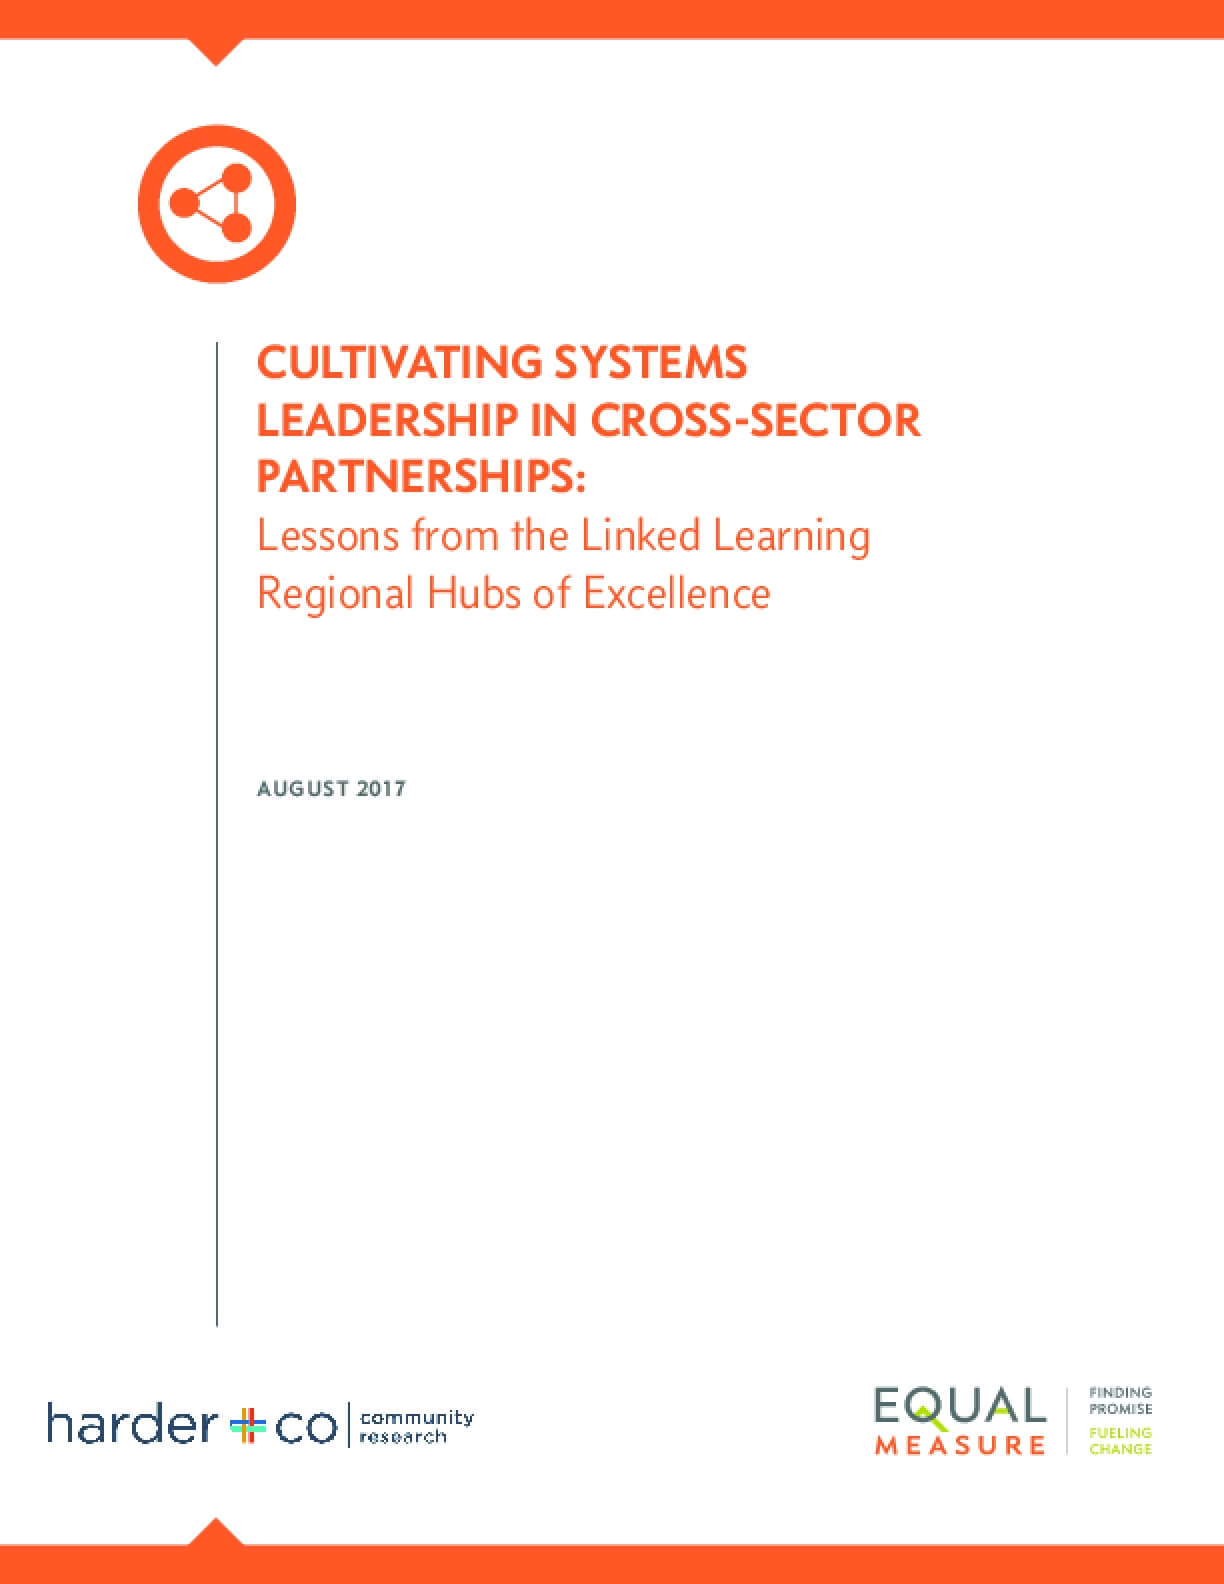 Cultivating Systems Leadership in Cross-Sector Partnerships: Lessons from the Linked Learning Regional Hubs of Excellence